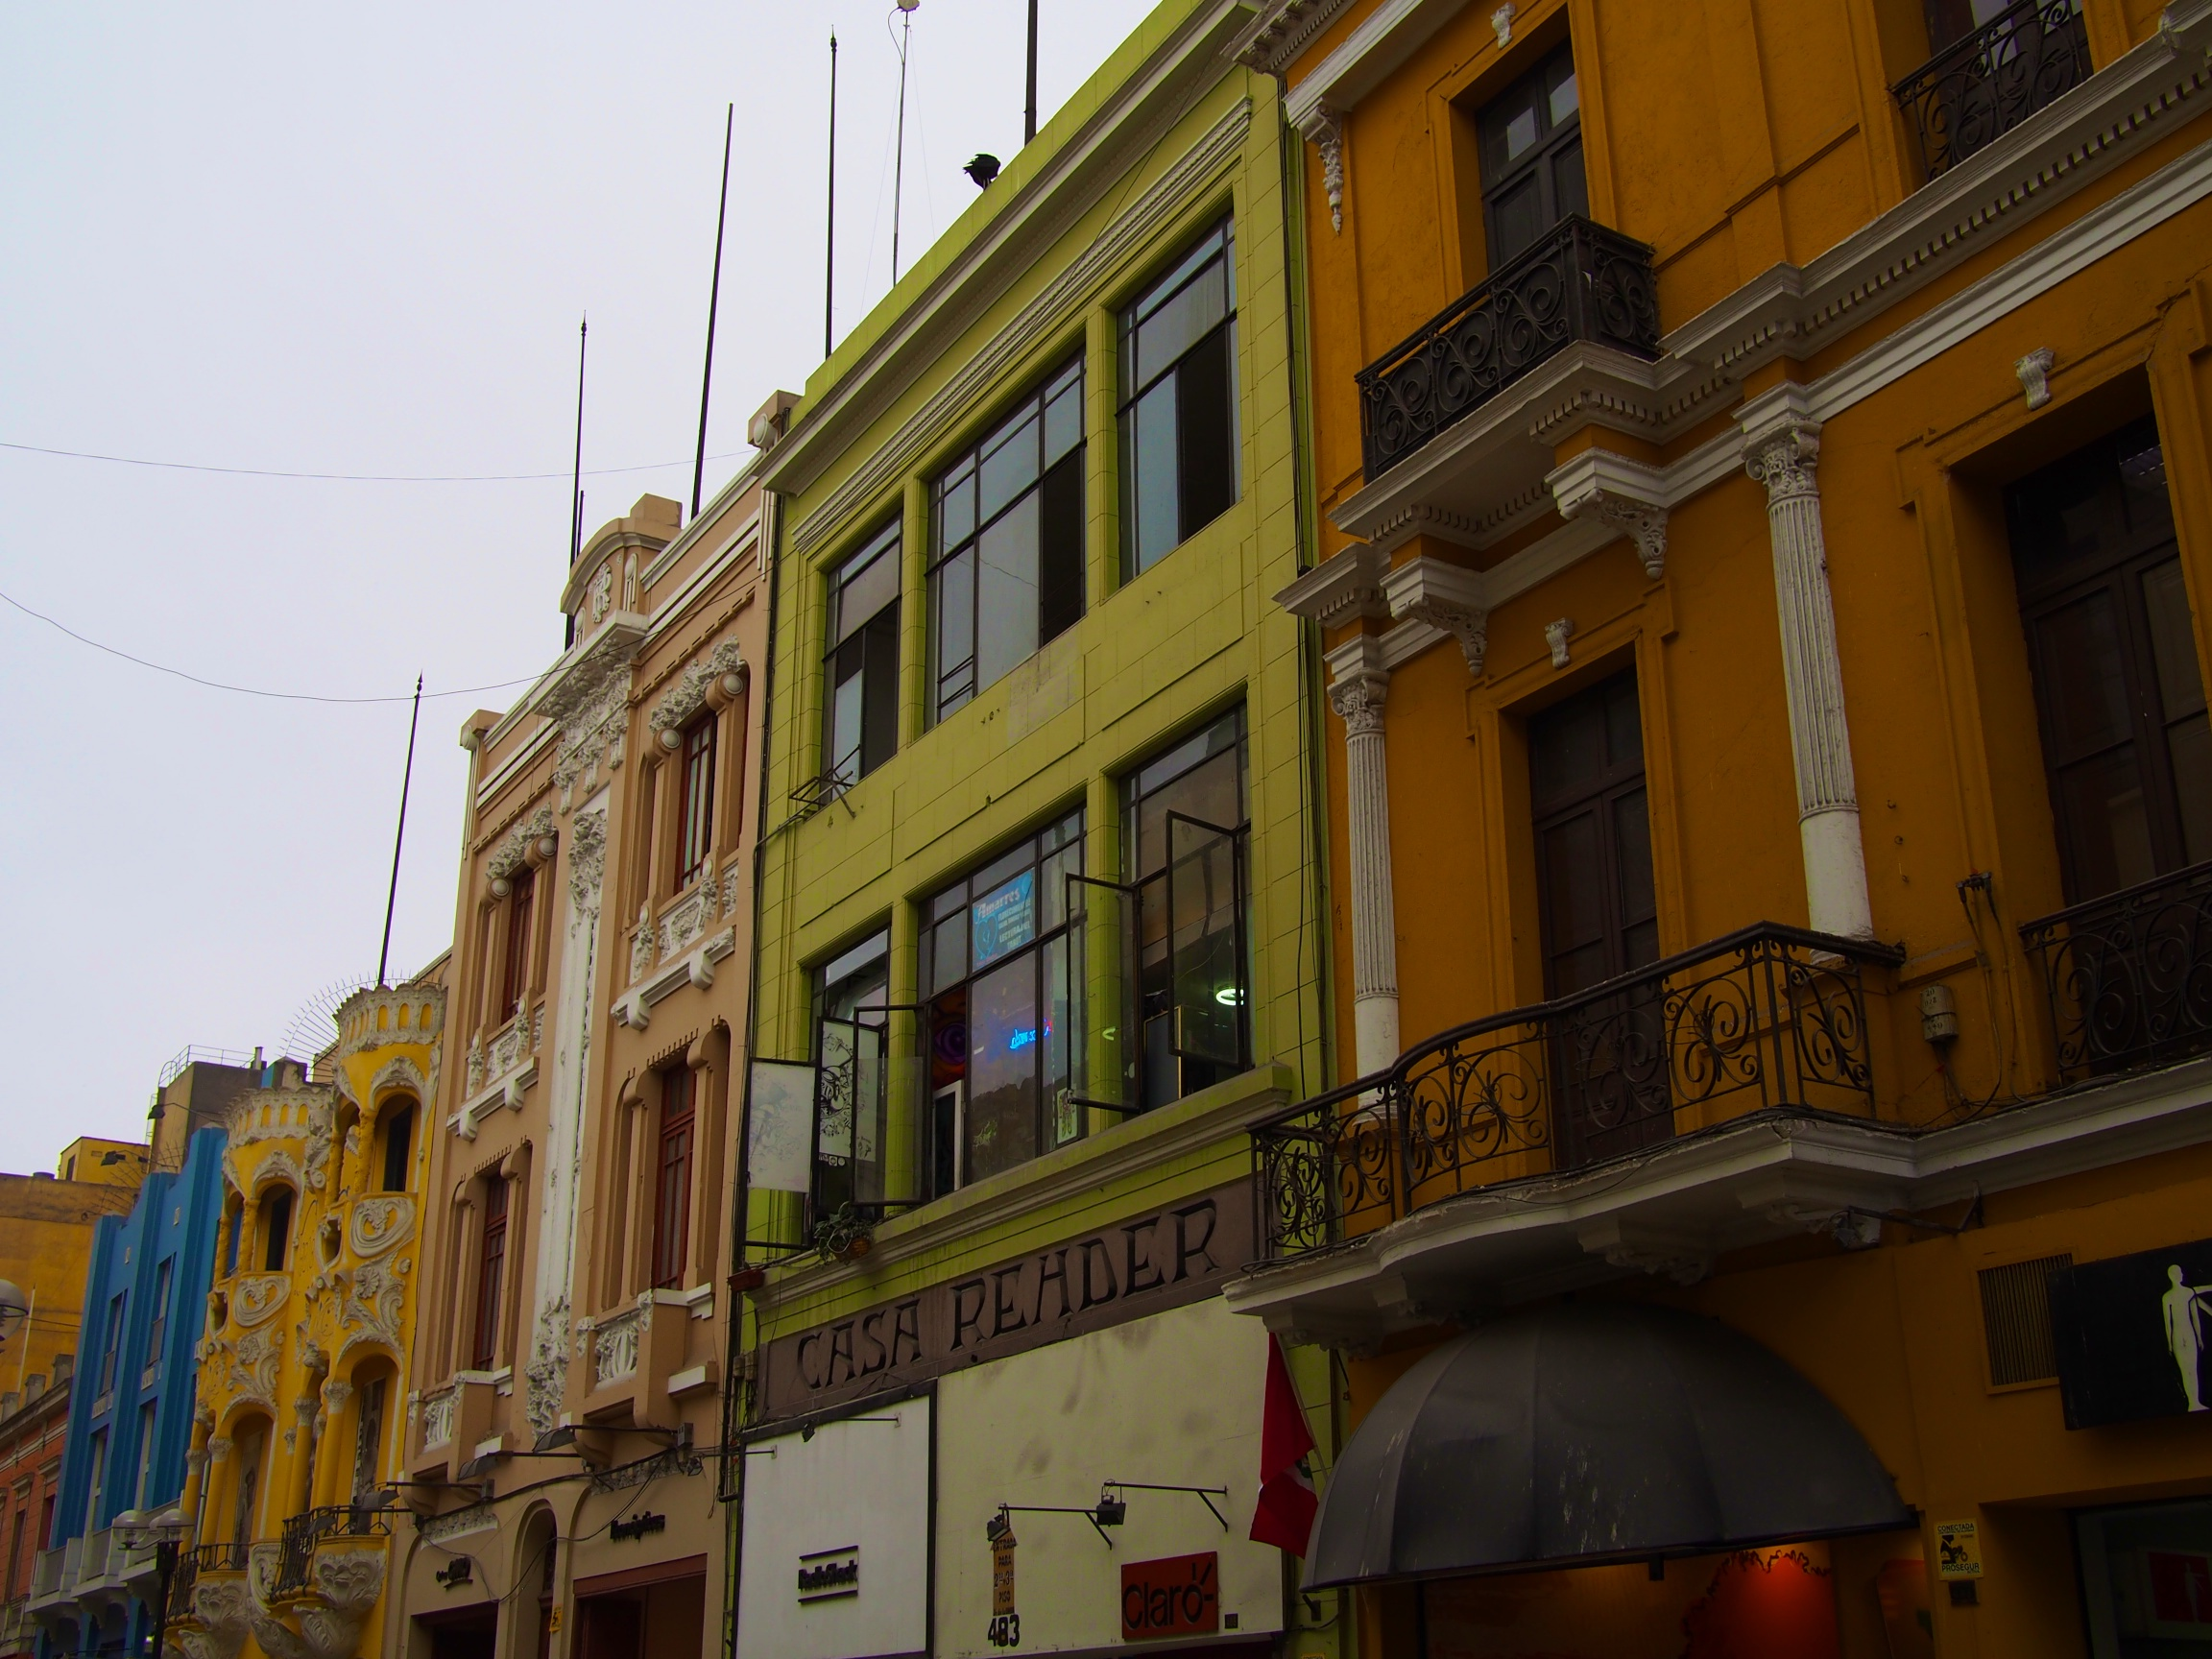 Some of the colorful buildings lining Lima's city center